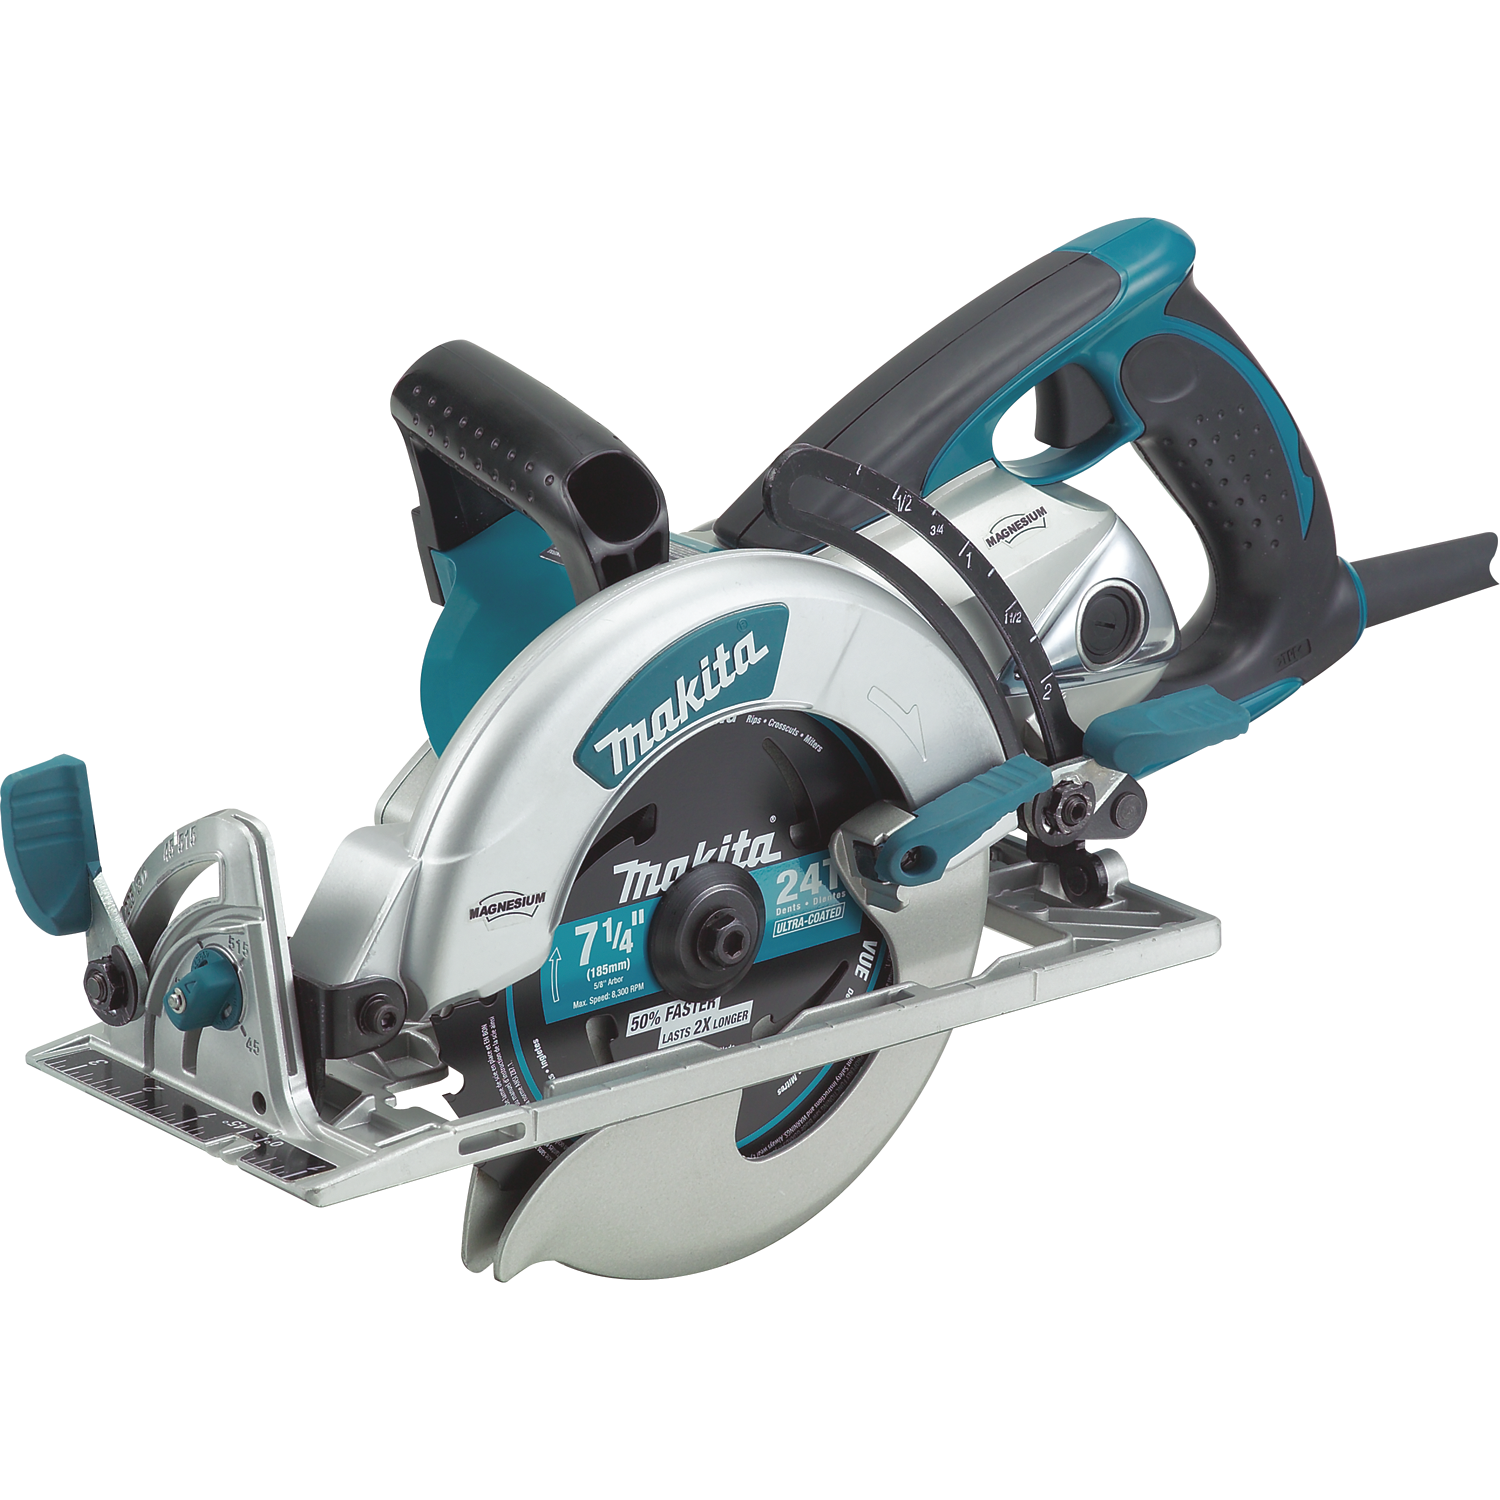 Makita - circular saw: overview, specifications, types and reviews